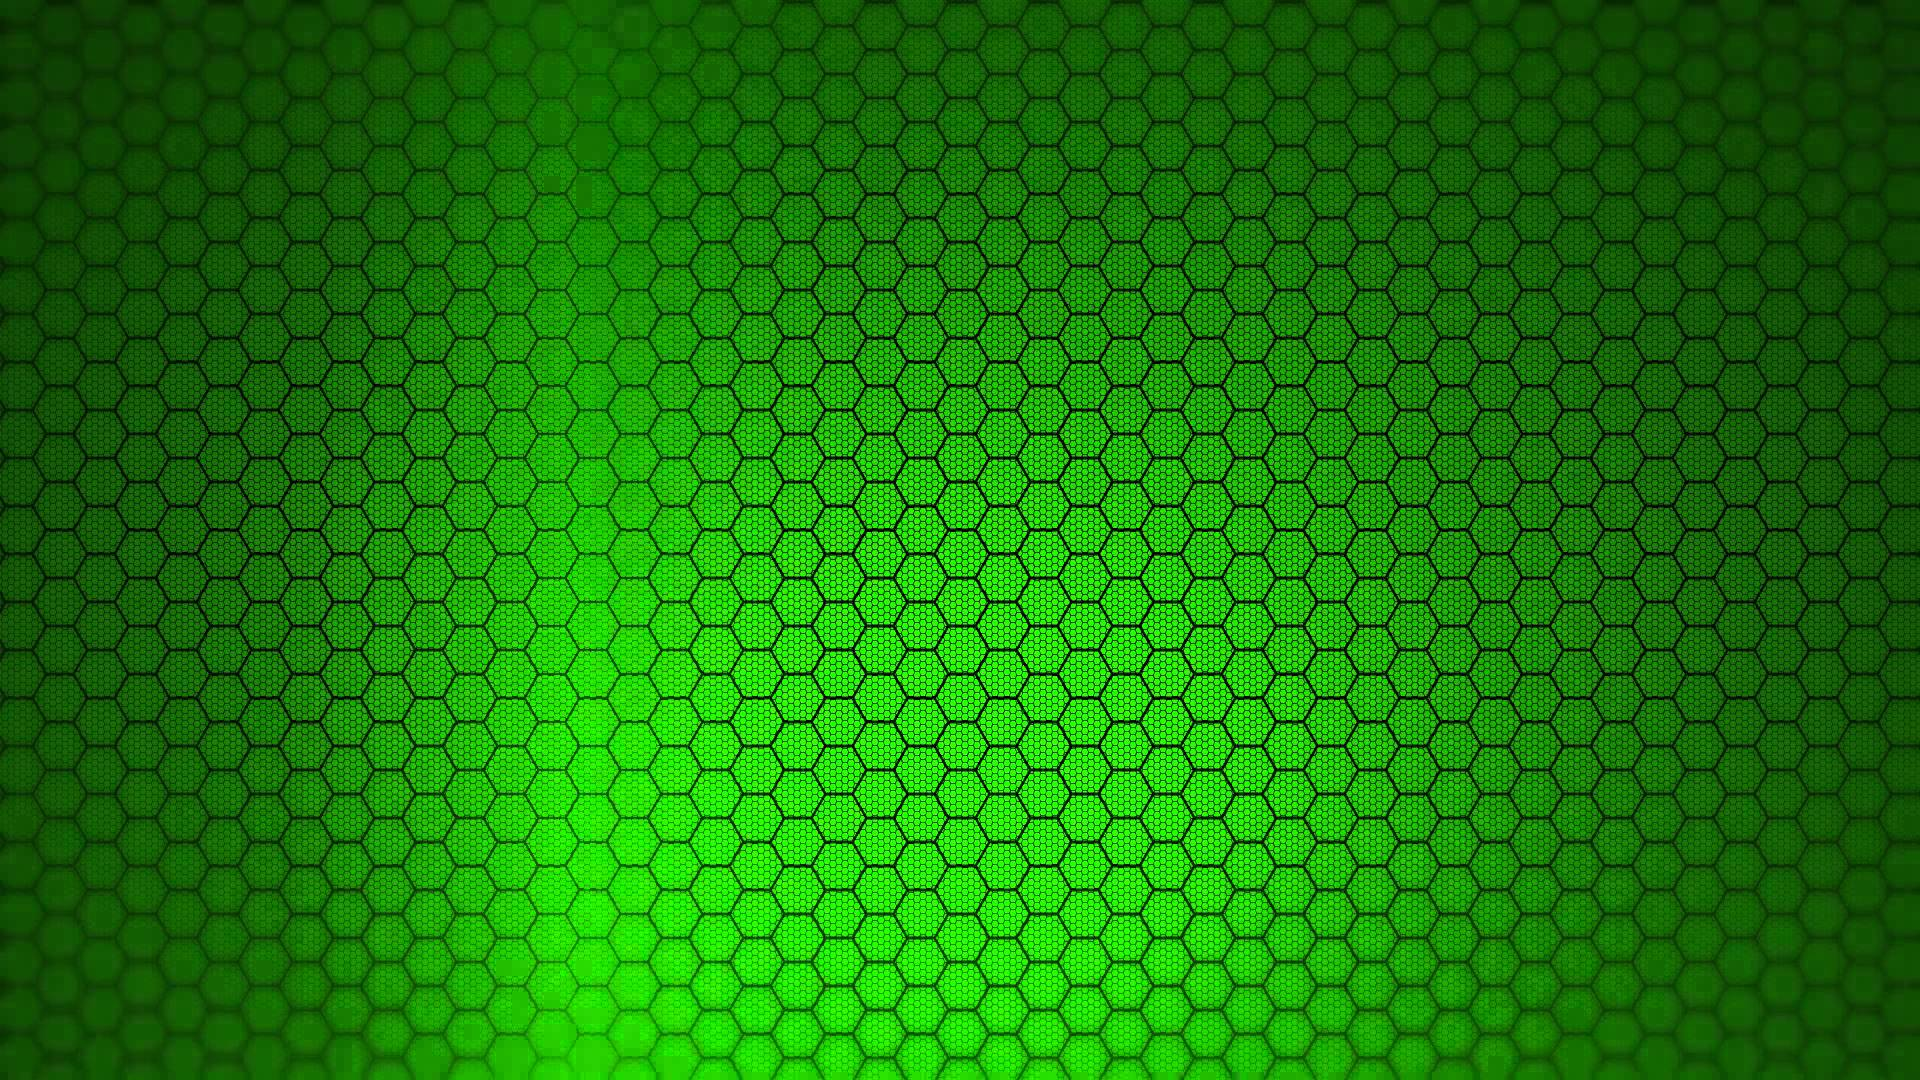 Green Background Photos and Wallpapers 1920x1080